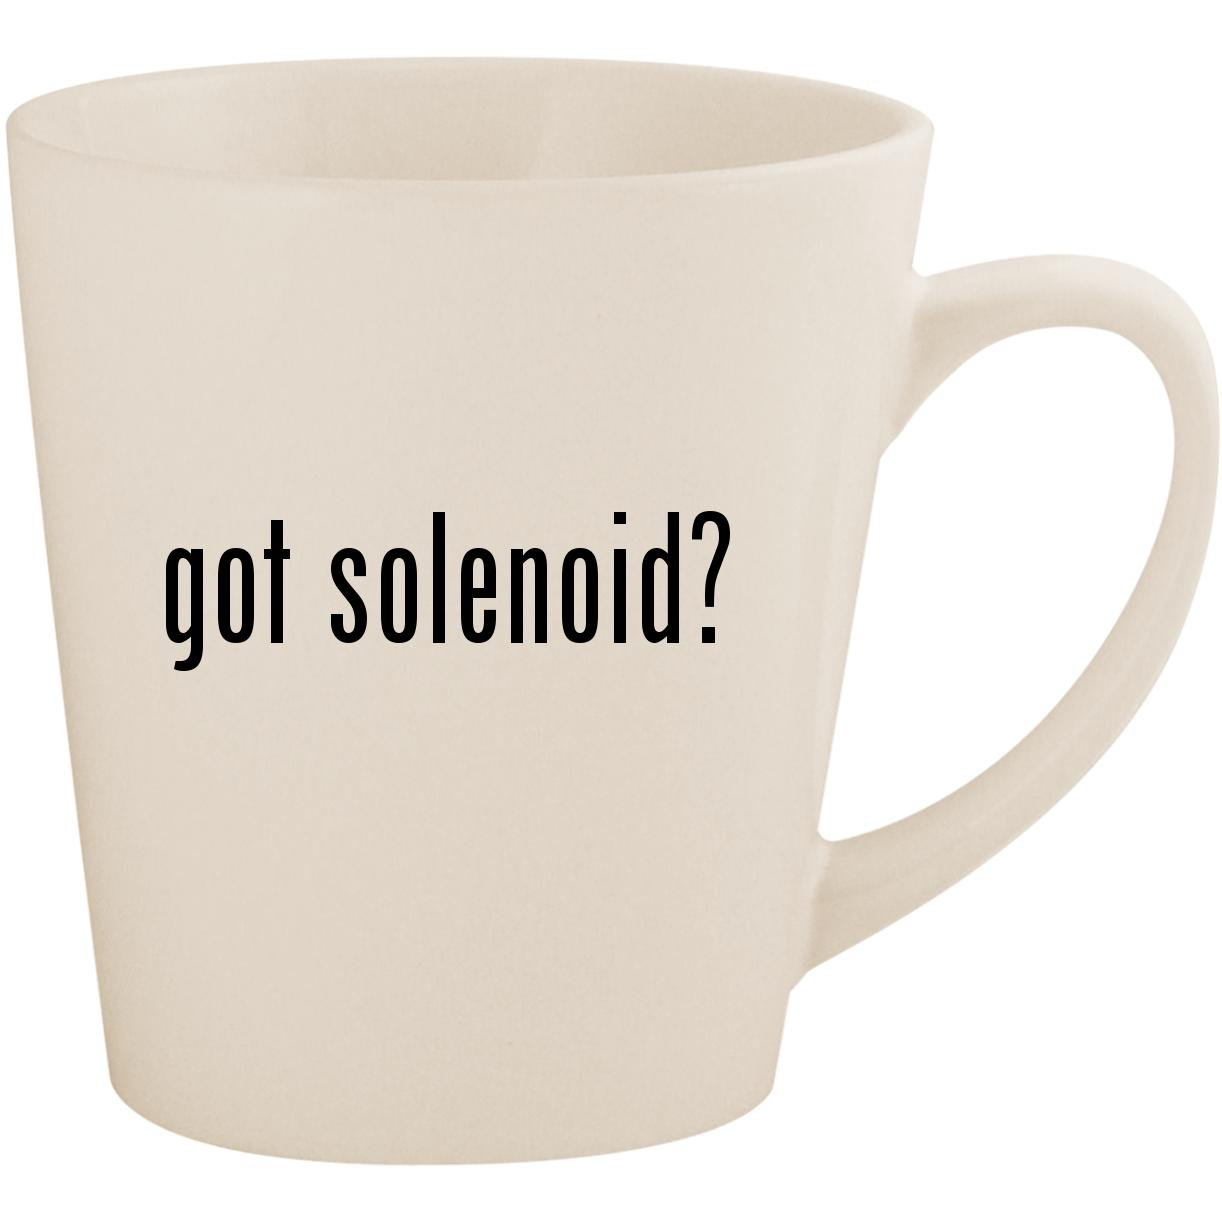 got solenoid? - White 12oz Ceramic Latte Mug Cup